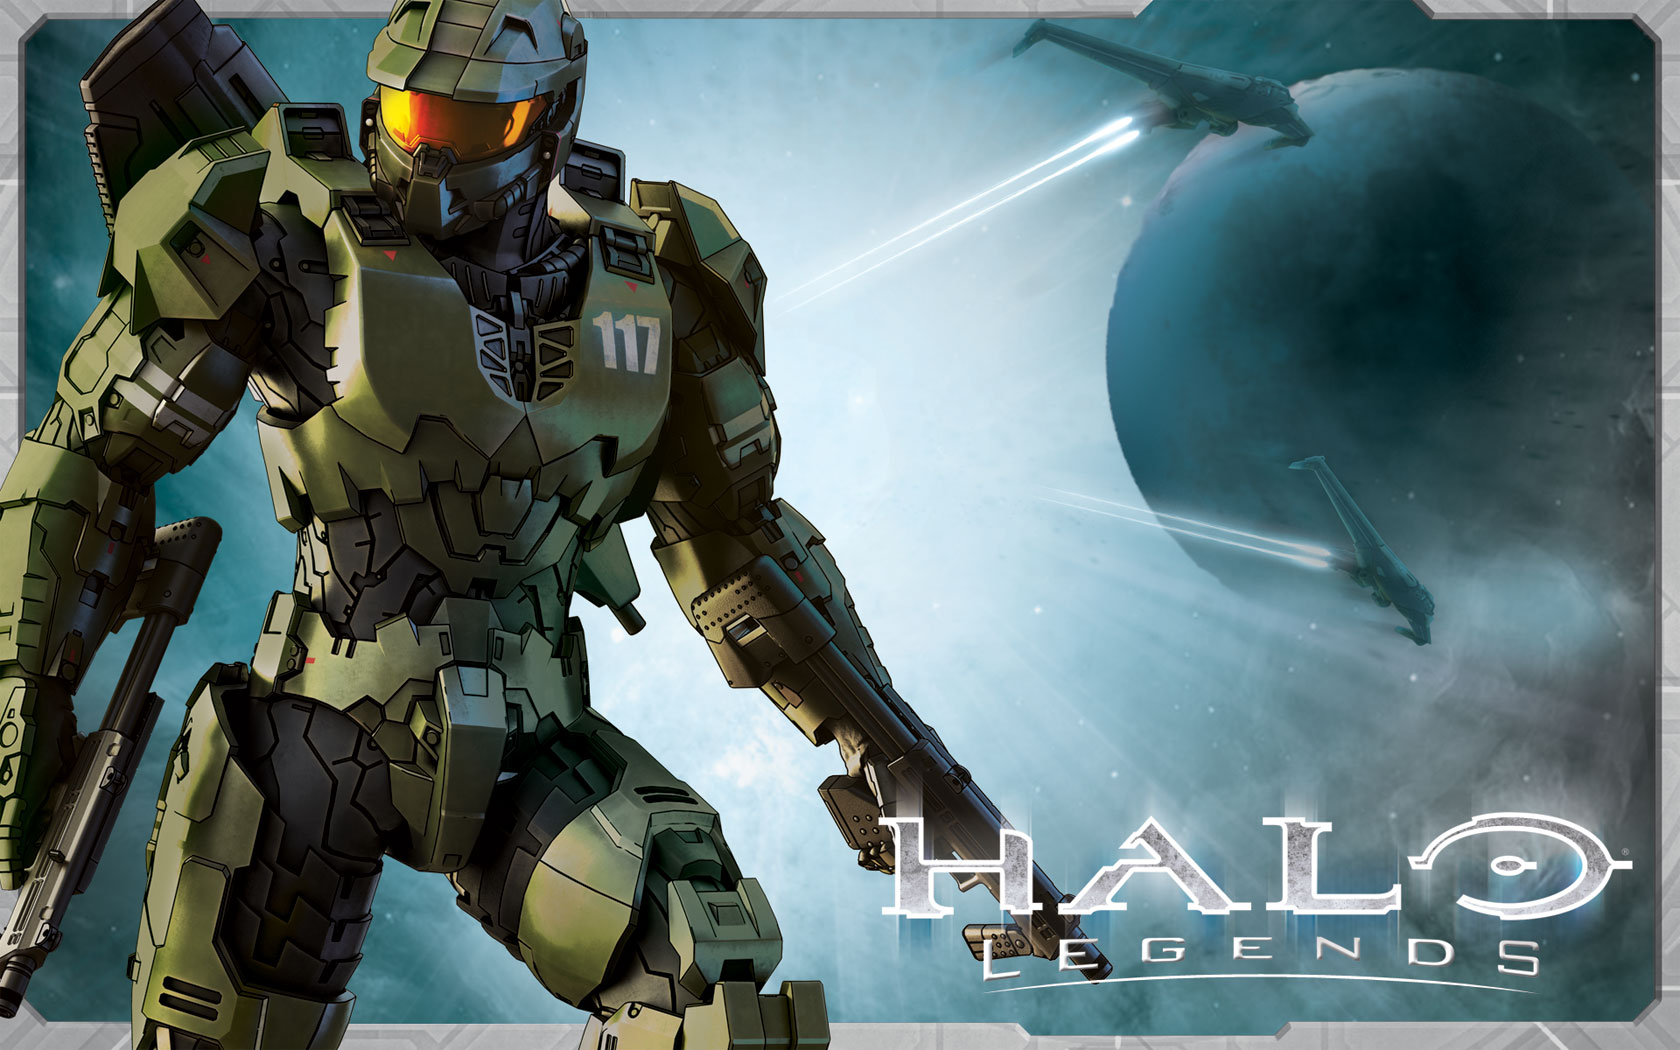 Images of Halo Legends | 1680x1050